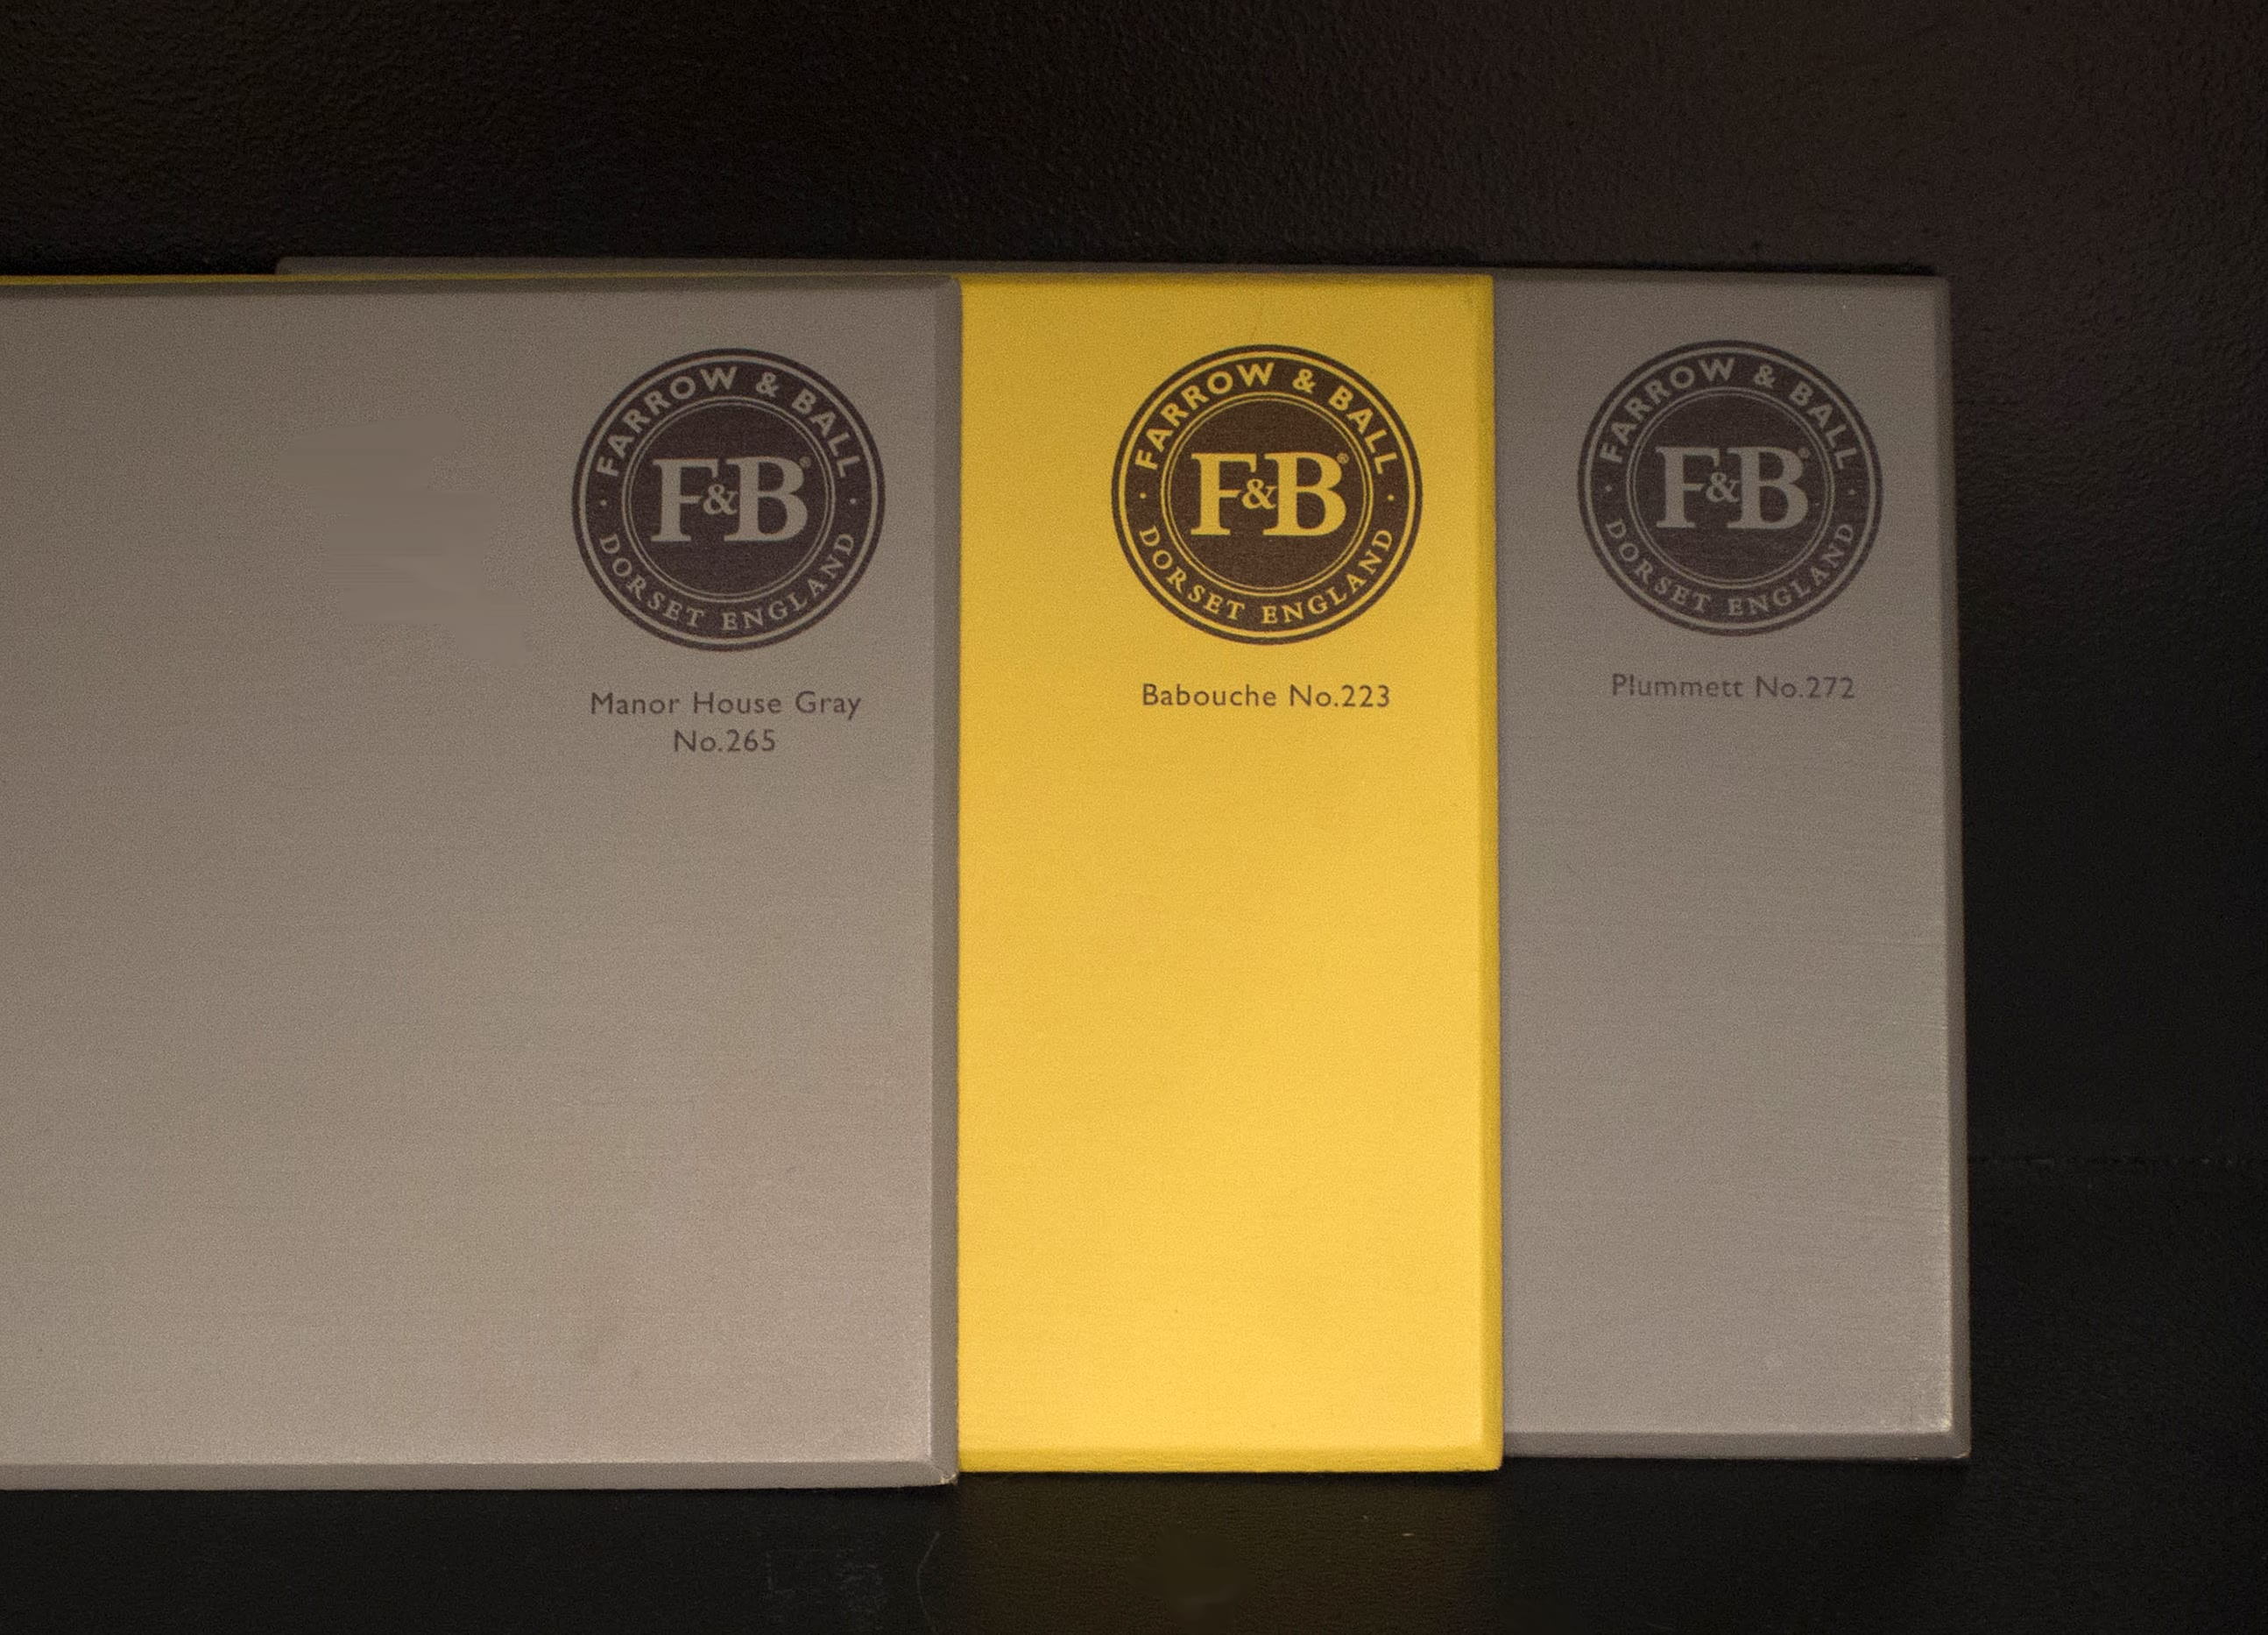 farrow&ball, farrow and ball, paint, decorating, paint brush, babouche